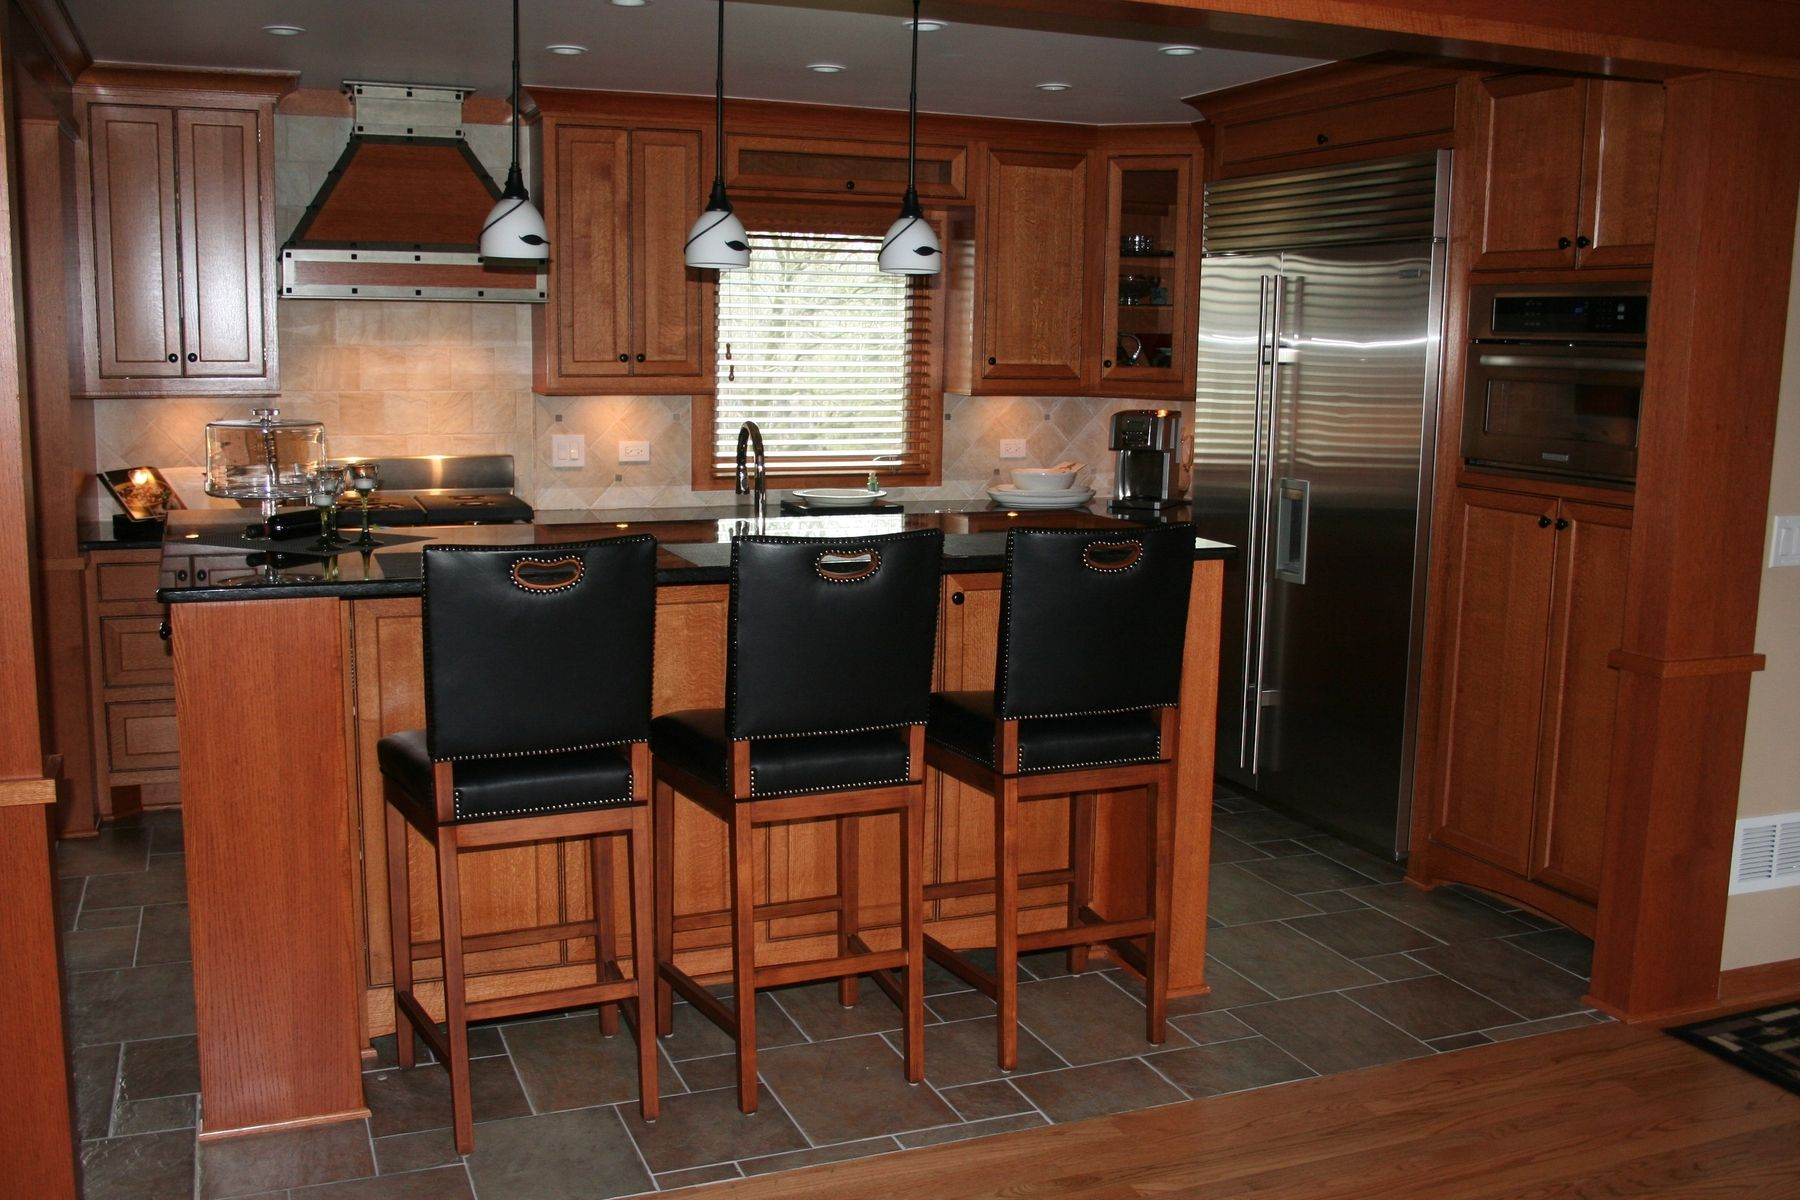 Custom Quarter Sawn Oak Kitchen Cabinets Kitchen Cabinet Design Kitchen Cabinet Colors Oak Kitchen Cabinets